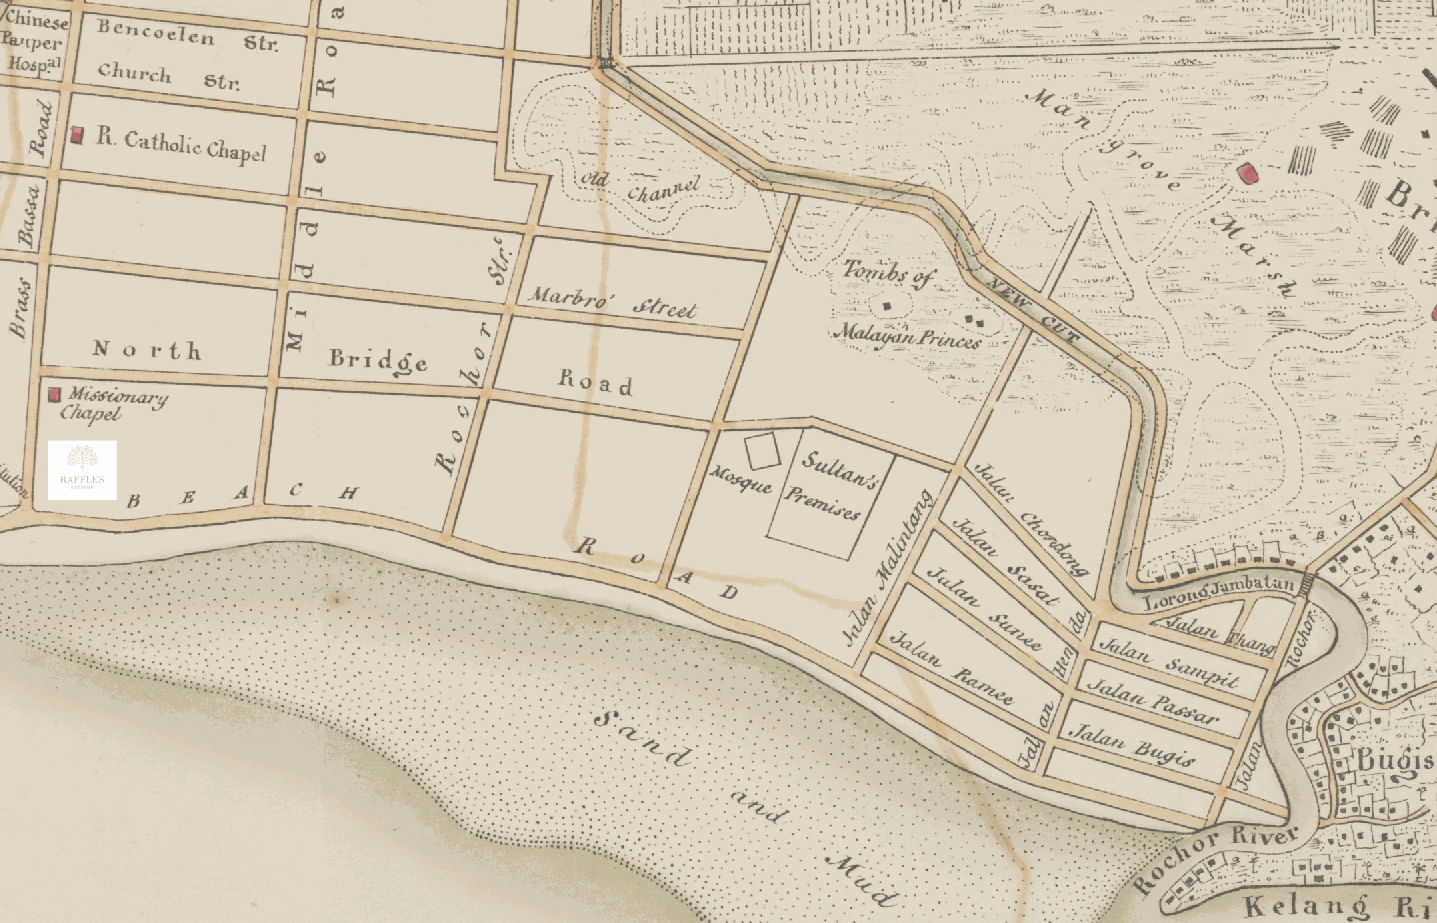 Old map of Singapore showing Beach Road before land reclamation, with Raffles Hotel on the far left. © Wikipedia